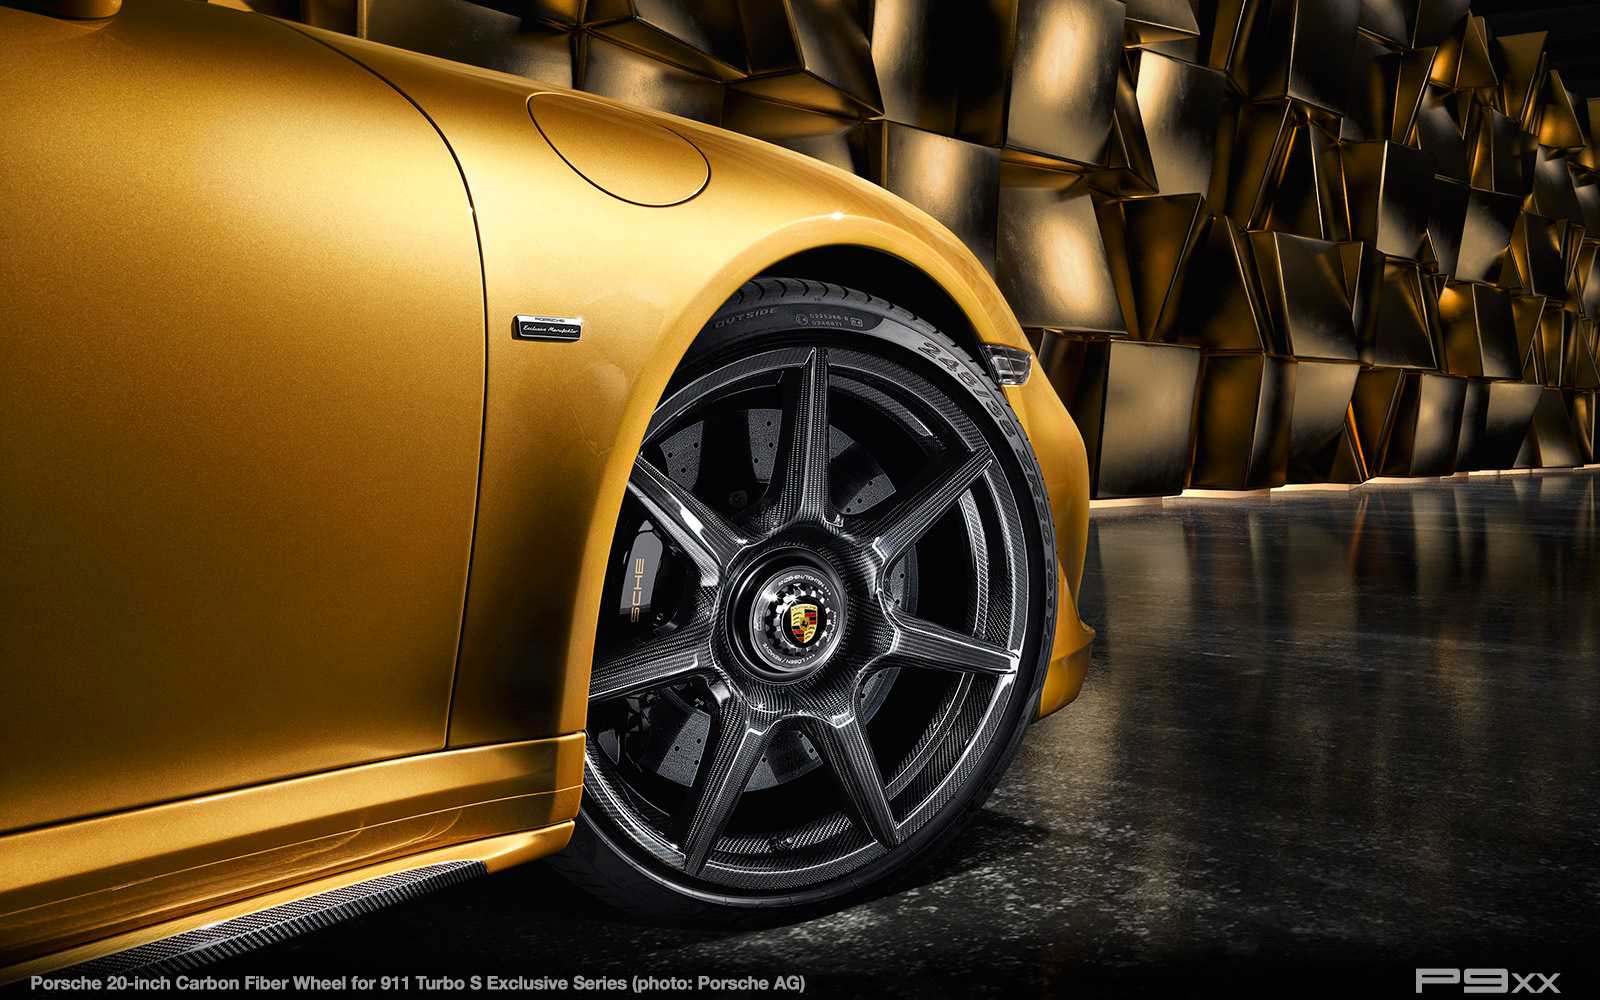 Porsche-911-Turbo-S-Exclusive-Series-Carbon-Fiber-Wheel-520